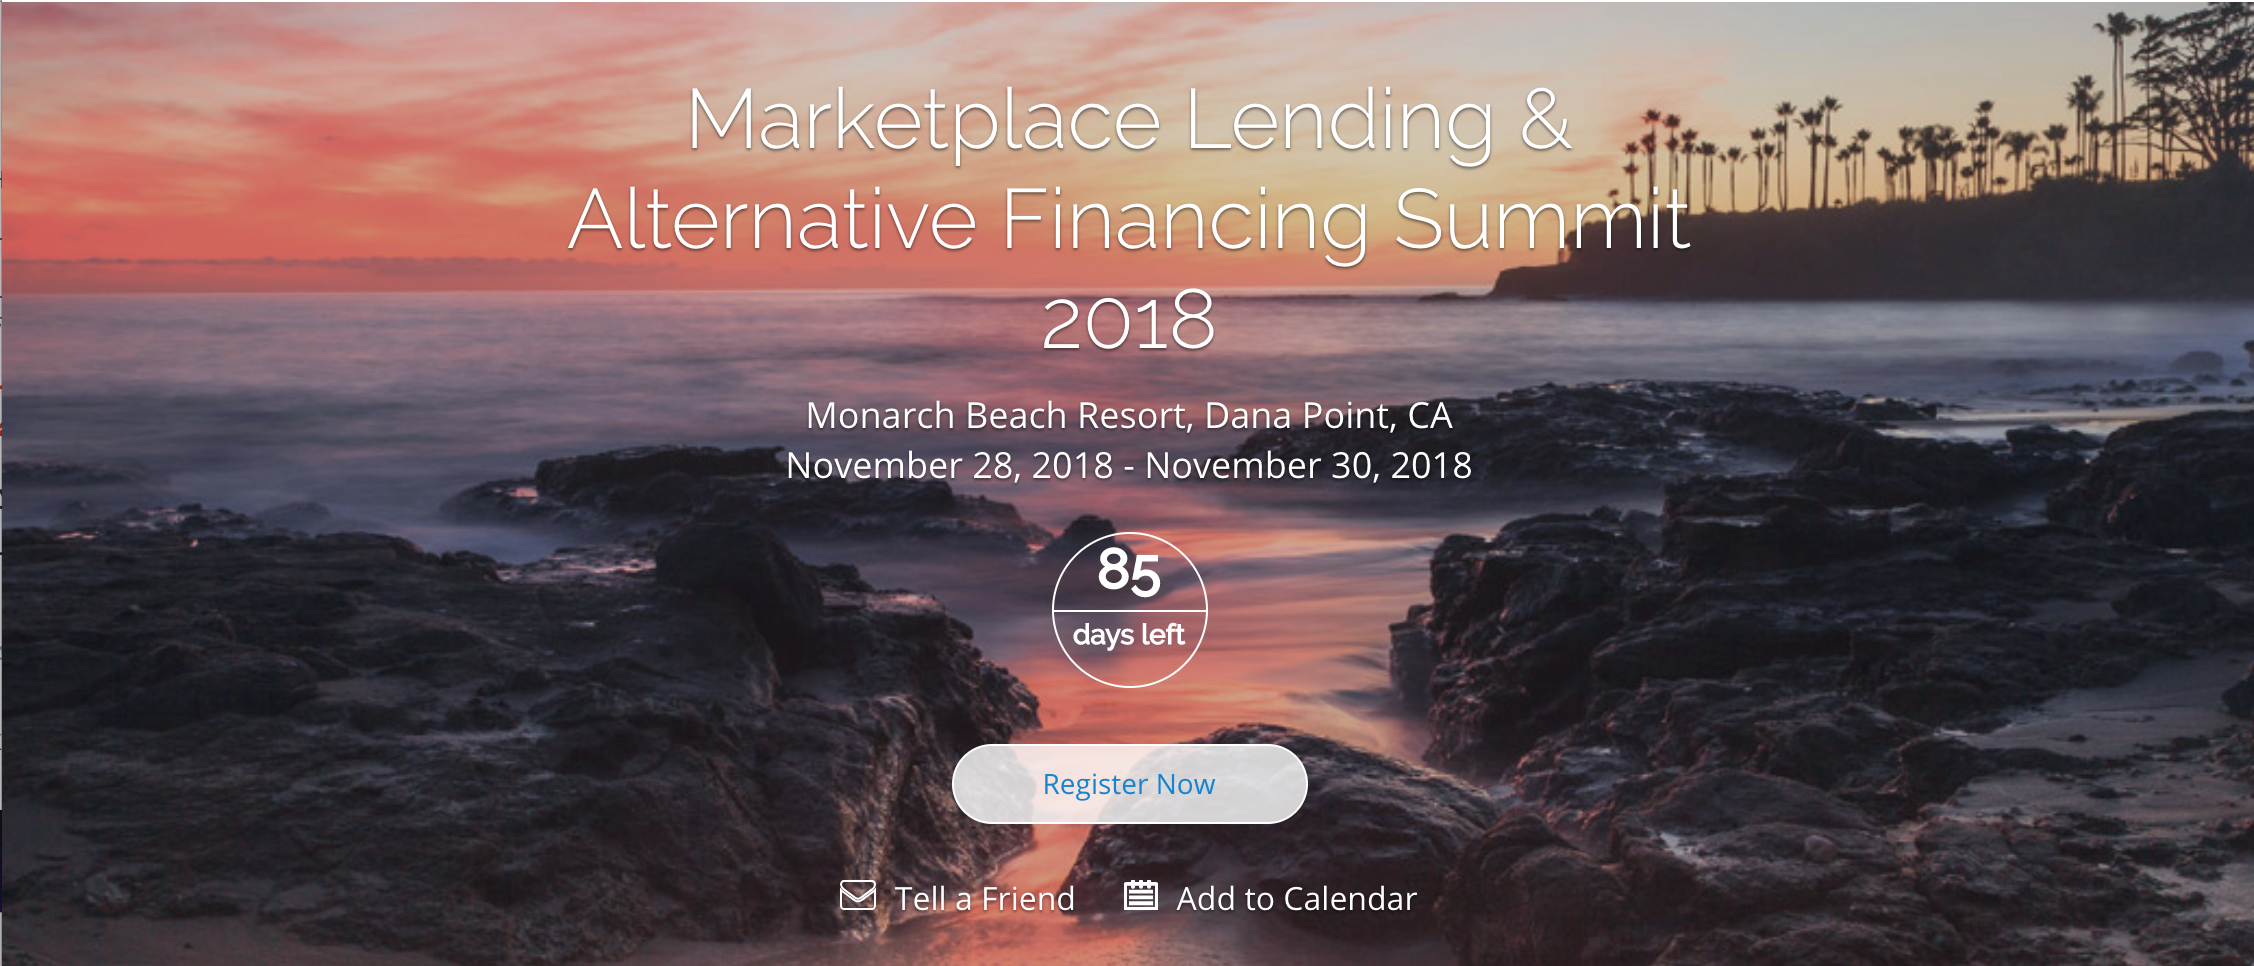 Marketplace Lending Alternative Financing Summit 2018 poster